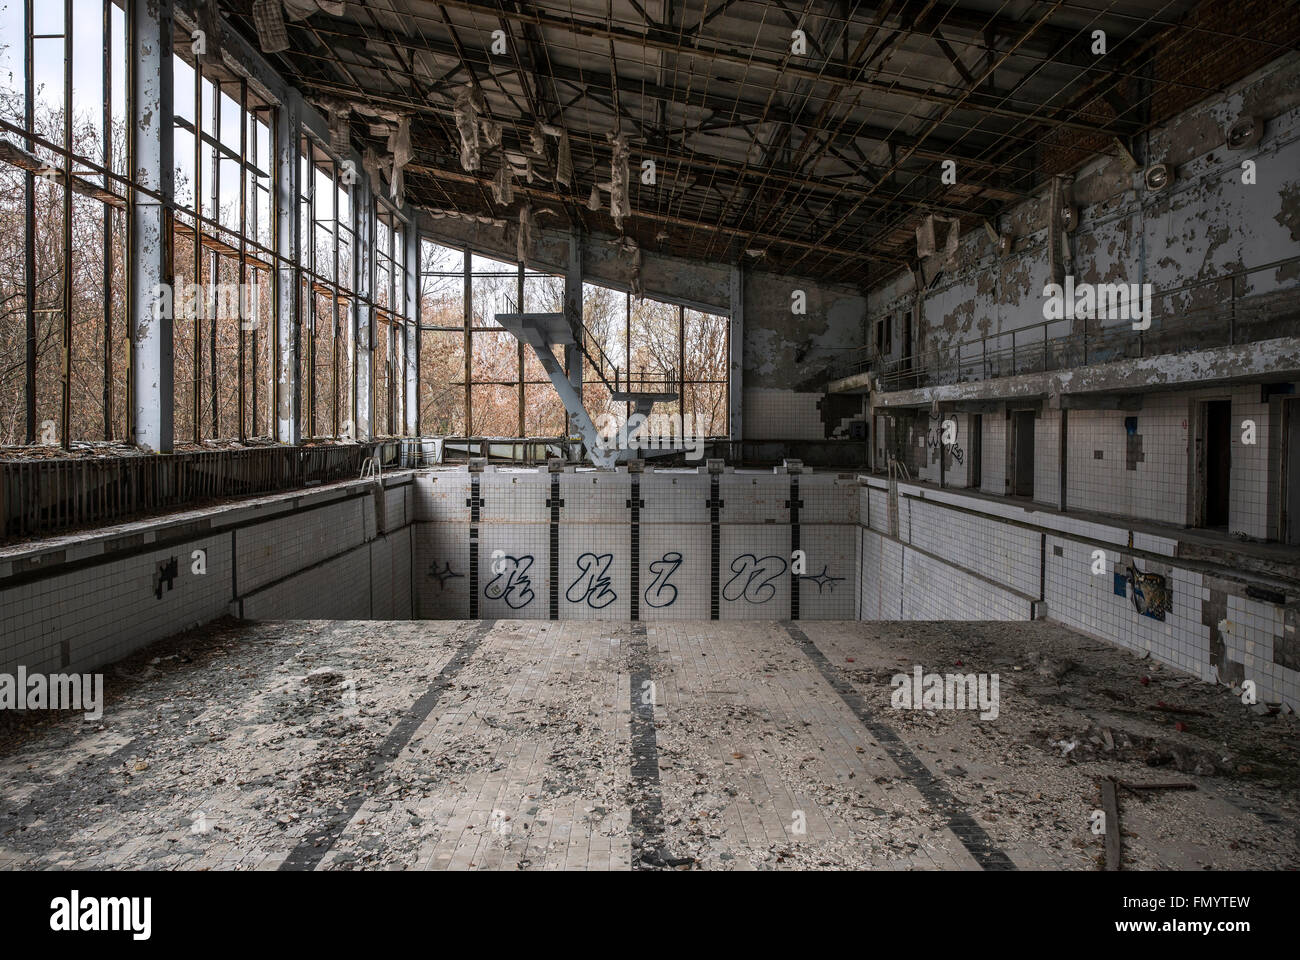 Swimming pool in Pripyat, Chernobyl scene of 1986 nuclear disaster - Stock Image